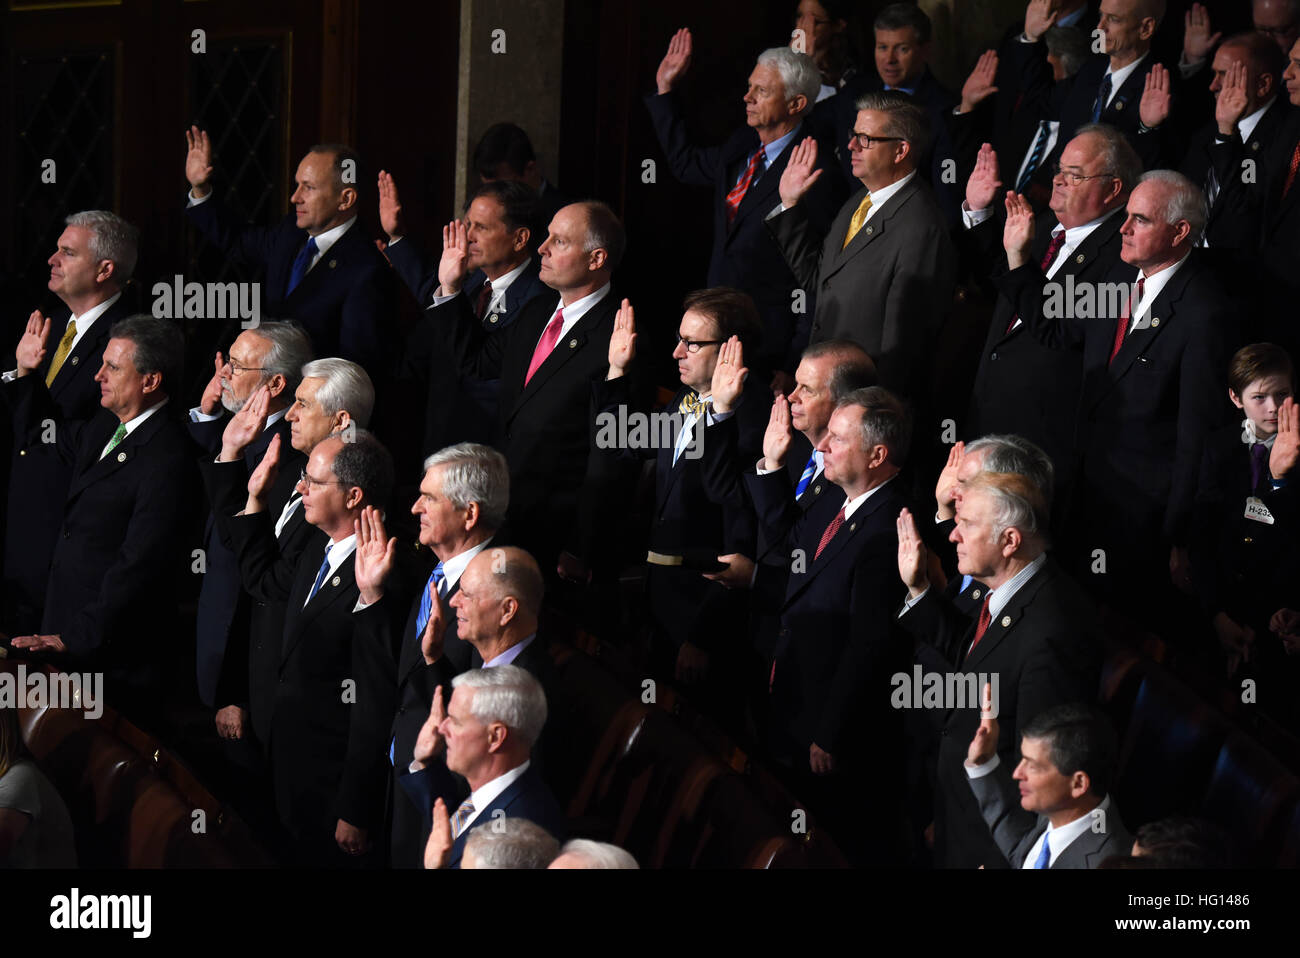 washington, usa. 3rd jan, 2017. newly elected members of the house